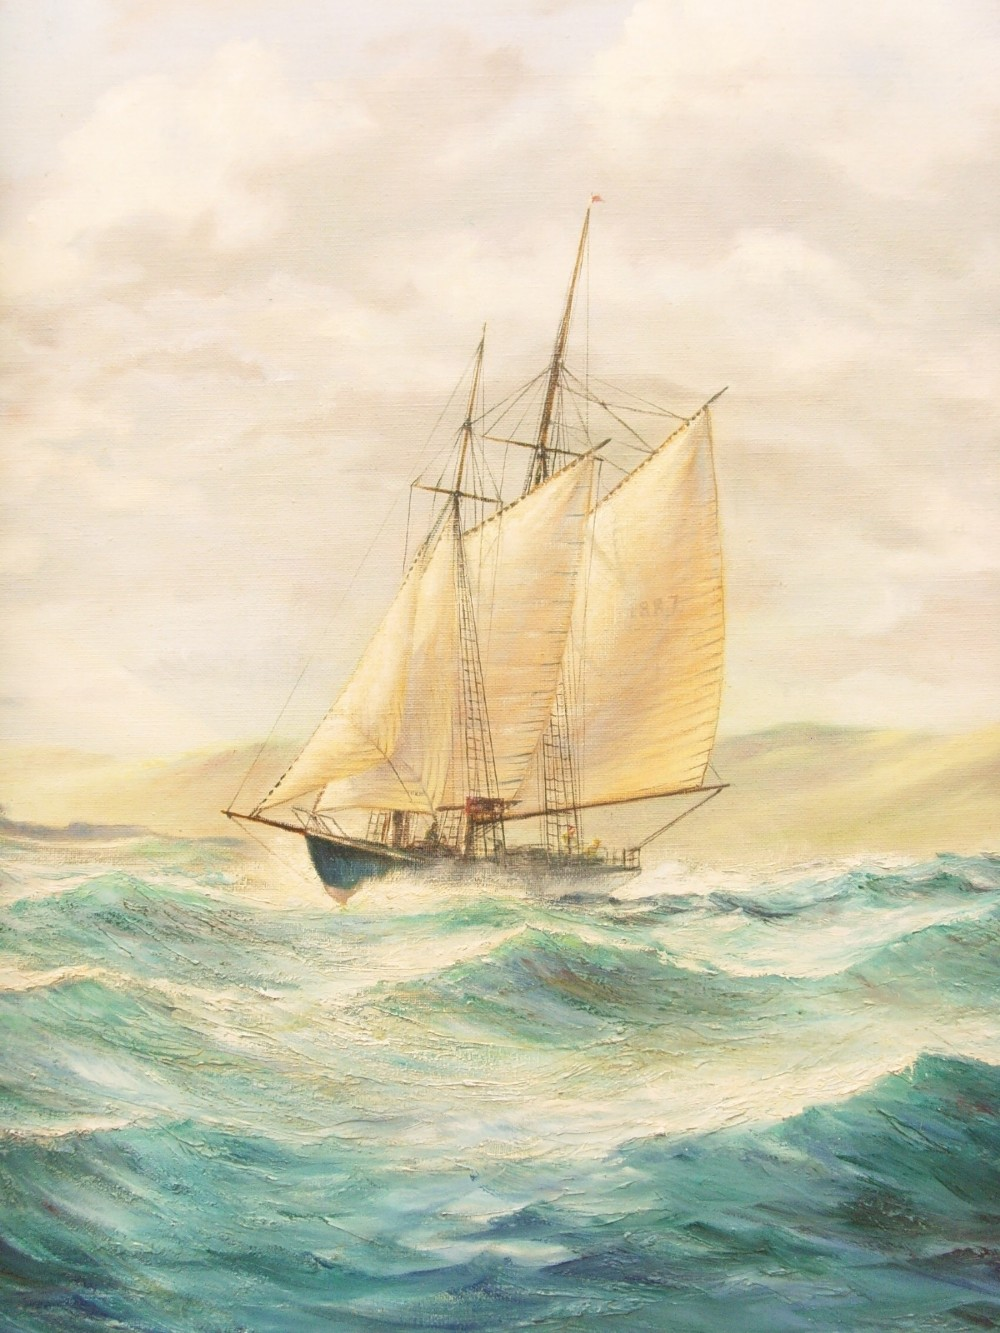 large marine seascape stmichaels mount penzance cornwall by artist kenneth carter oil paintings on canvas sailing ships antique art naval coastal pictures choppy seas waves gilt frames